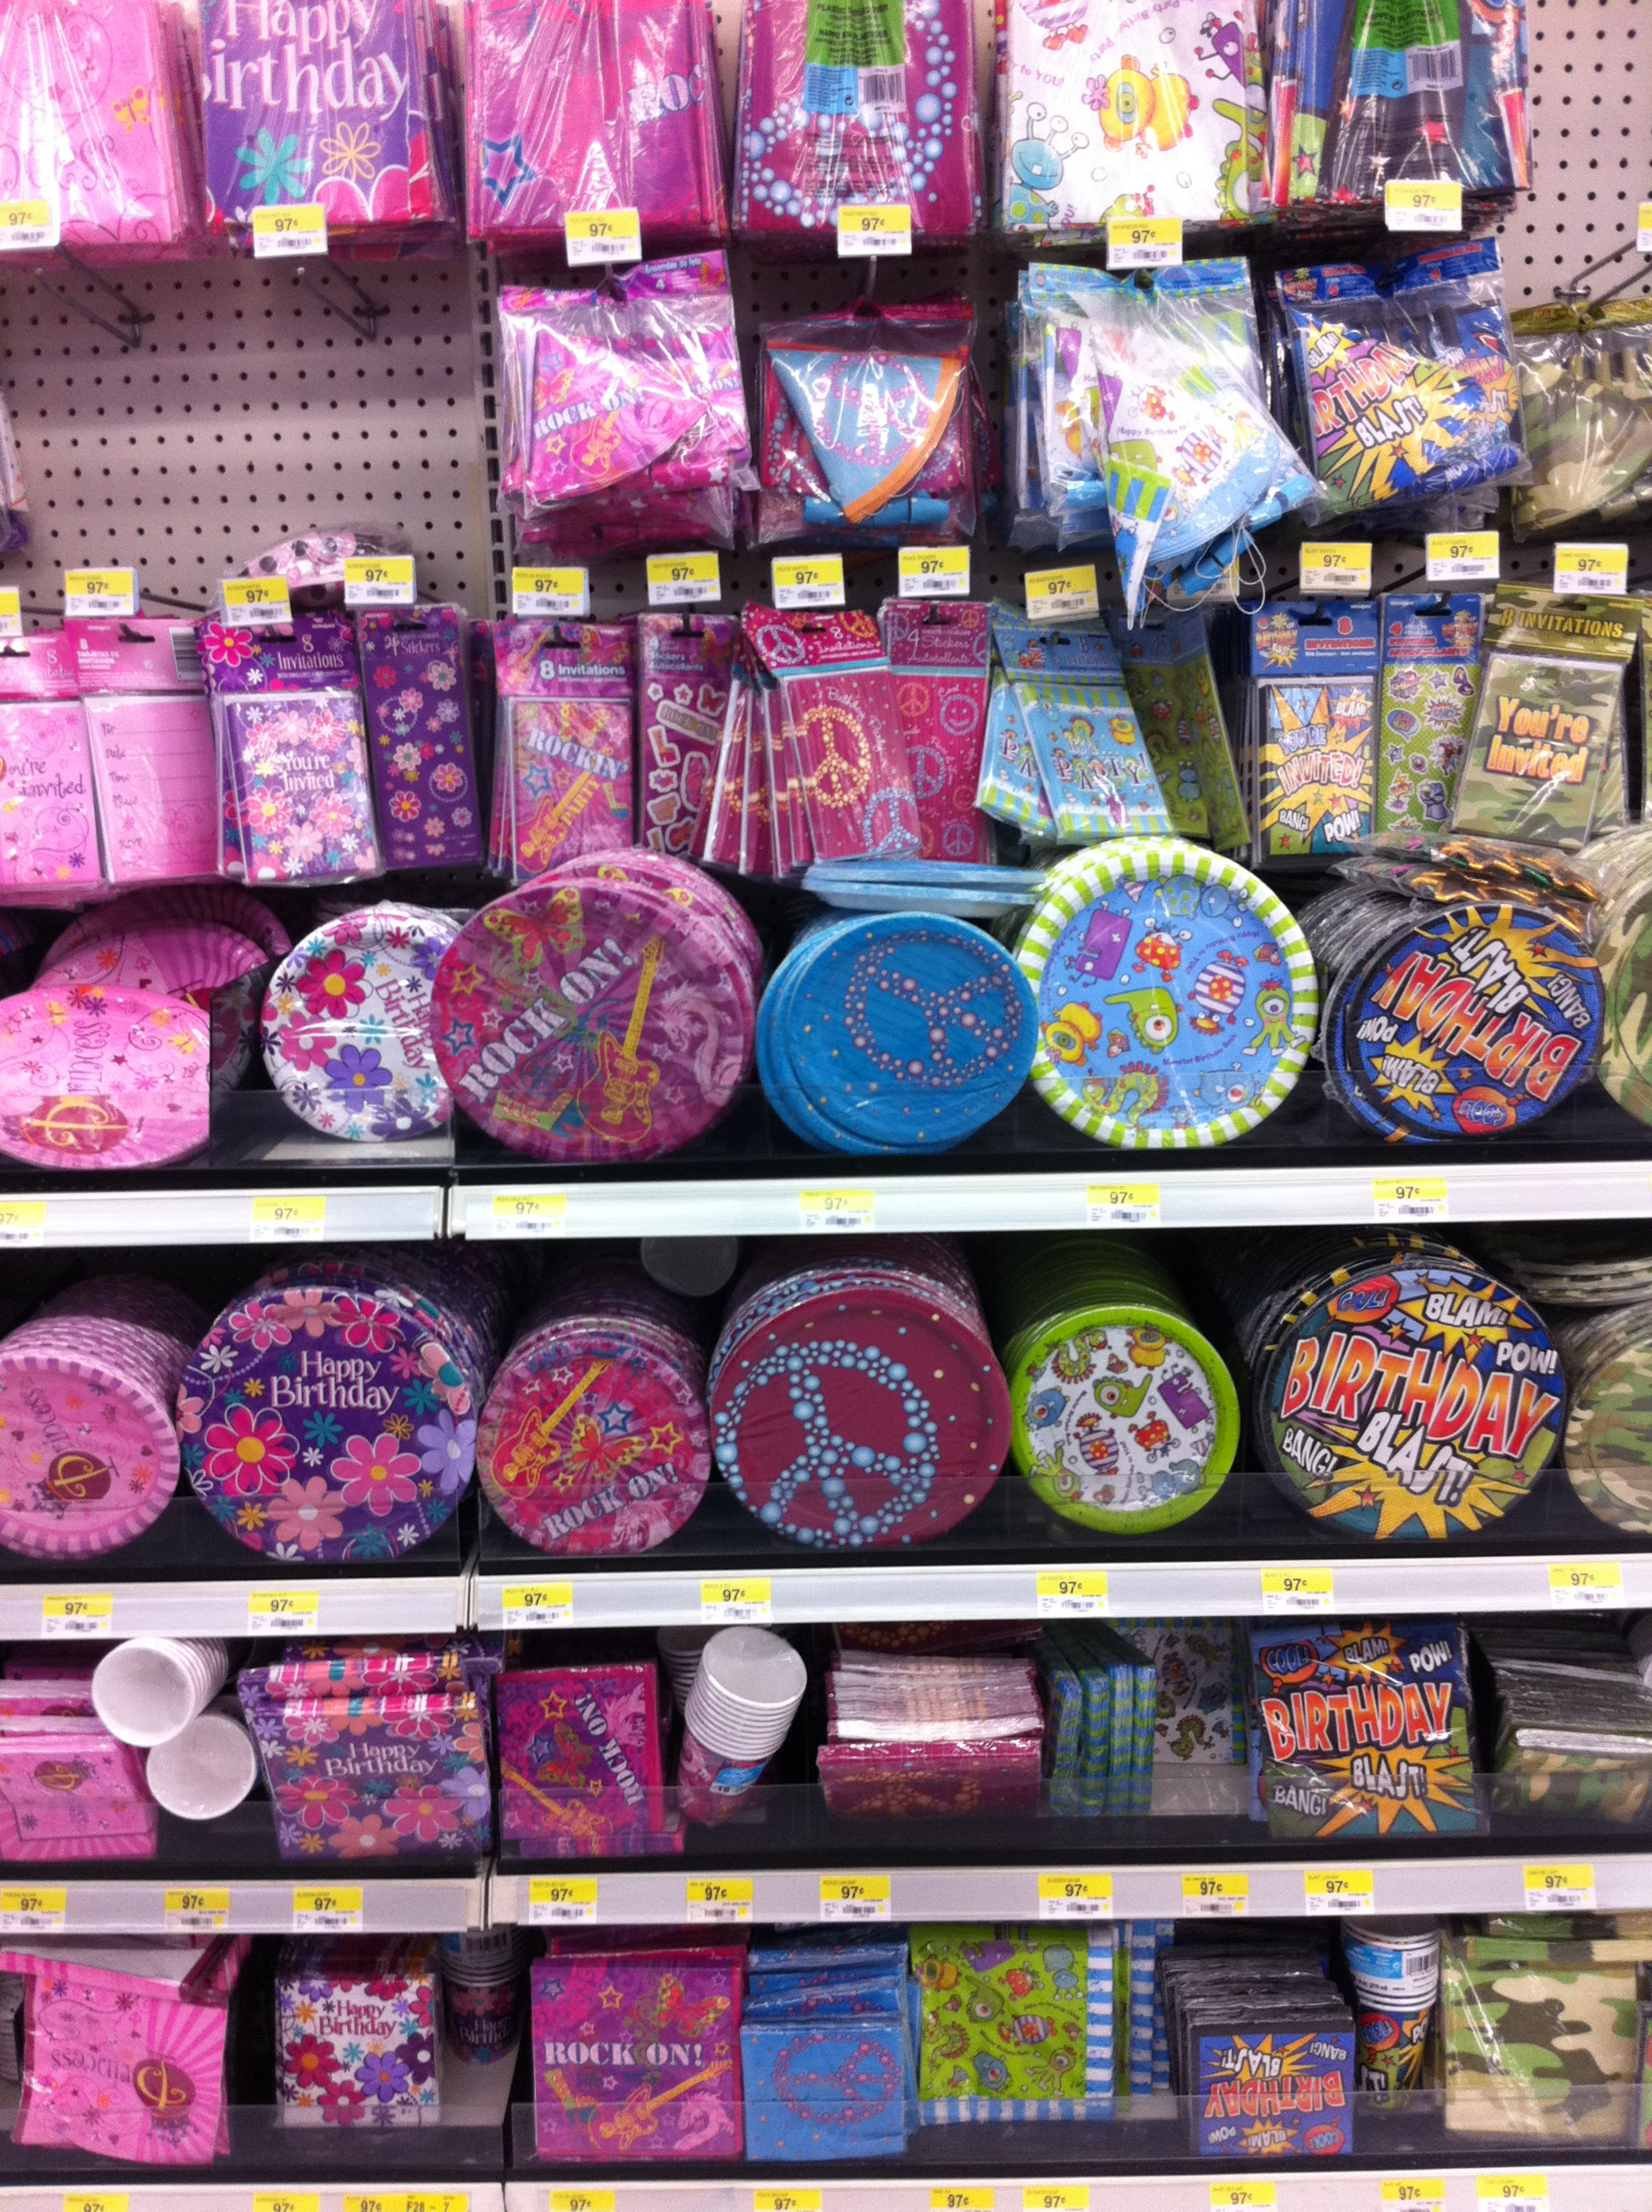 Best ideas about Walmart Birthday Decorations . Save or Pin Walmart s Party Assortment Frugal Upstate Now.